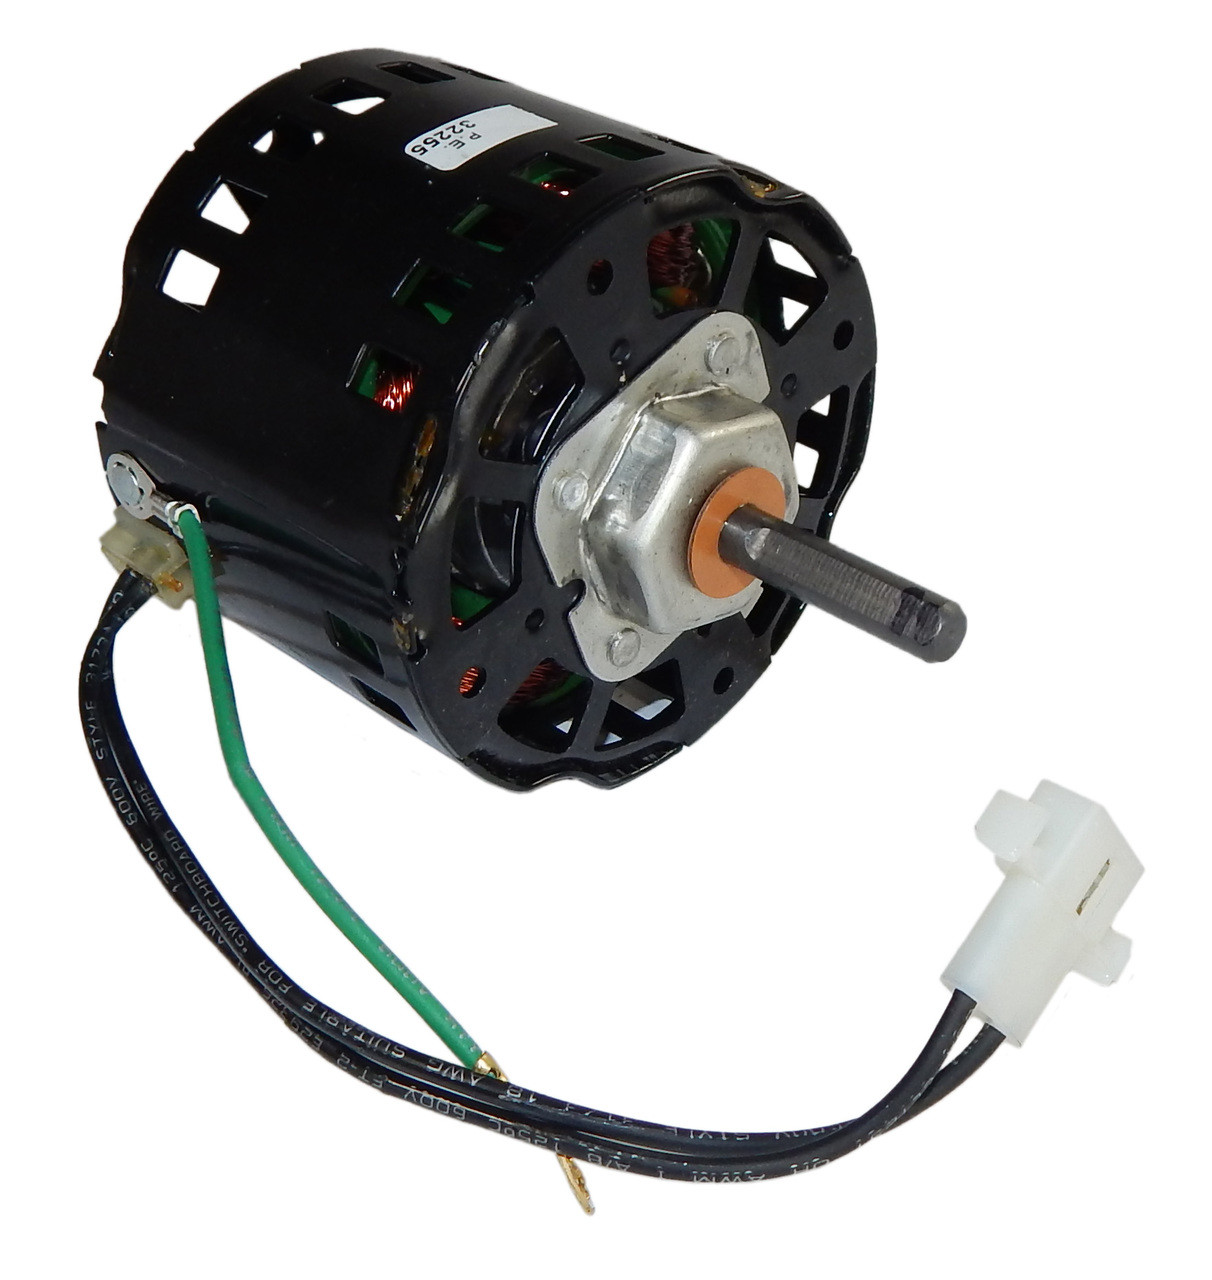 medium resolution of broan 360 replacement fan motor 97008583 1200 rpm 7 amps 120 volts rh electricmotorwarehouse com